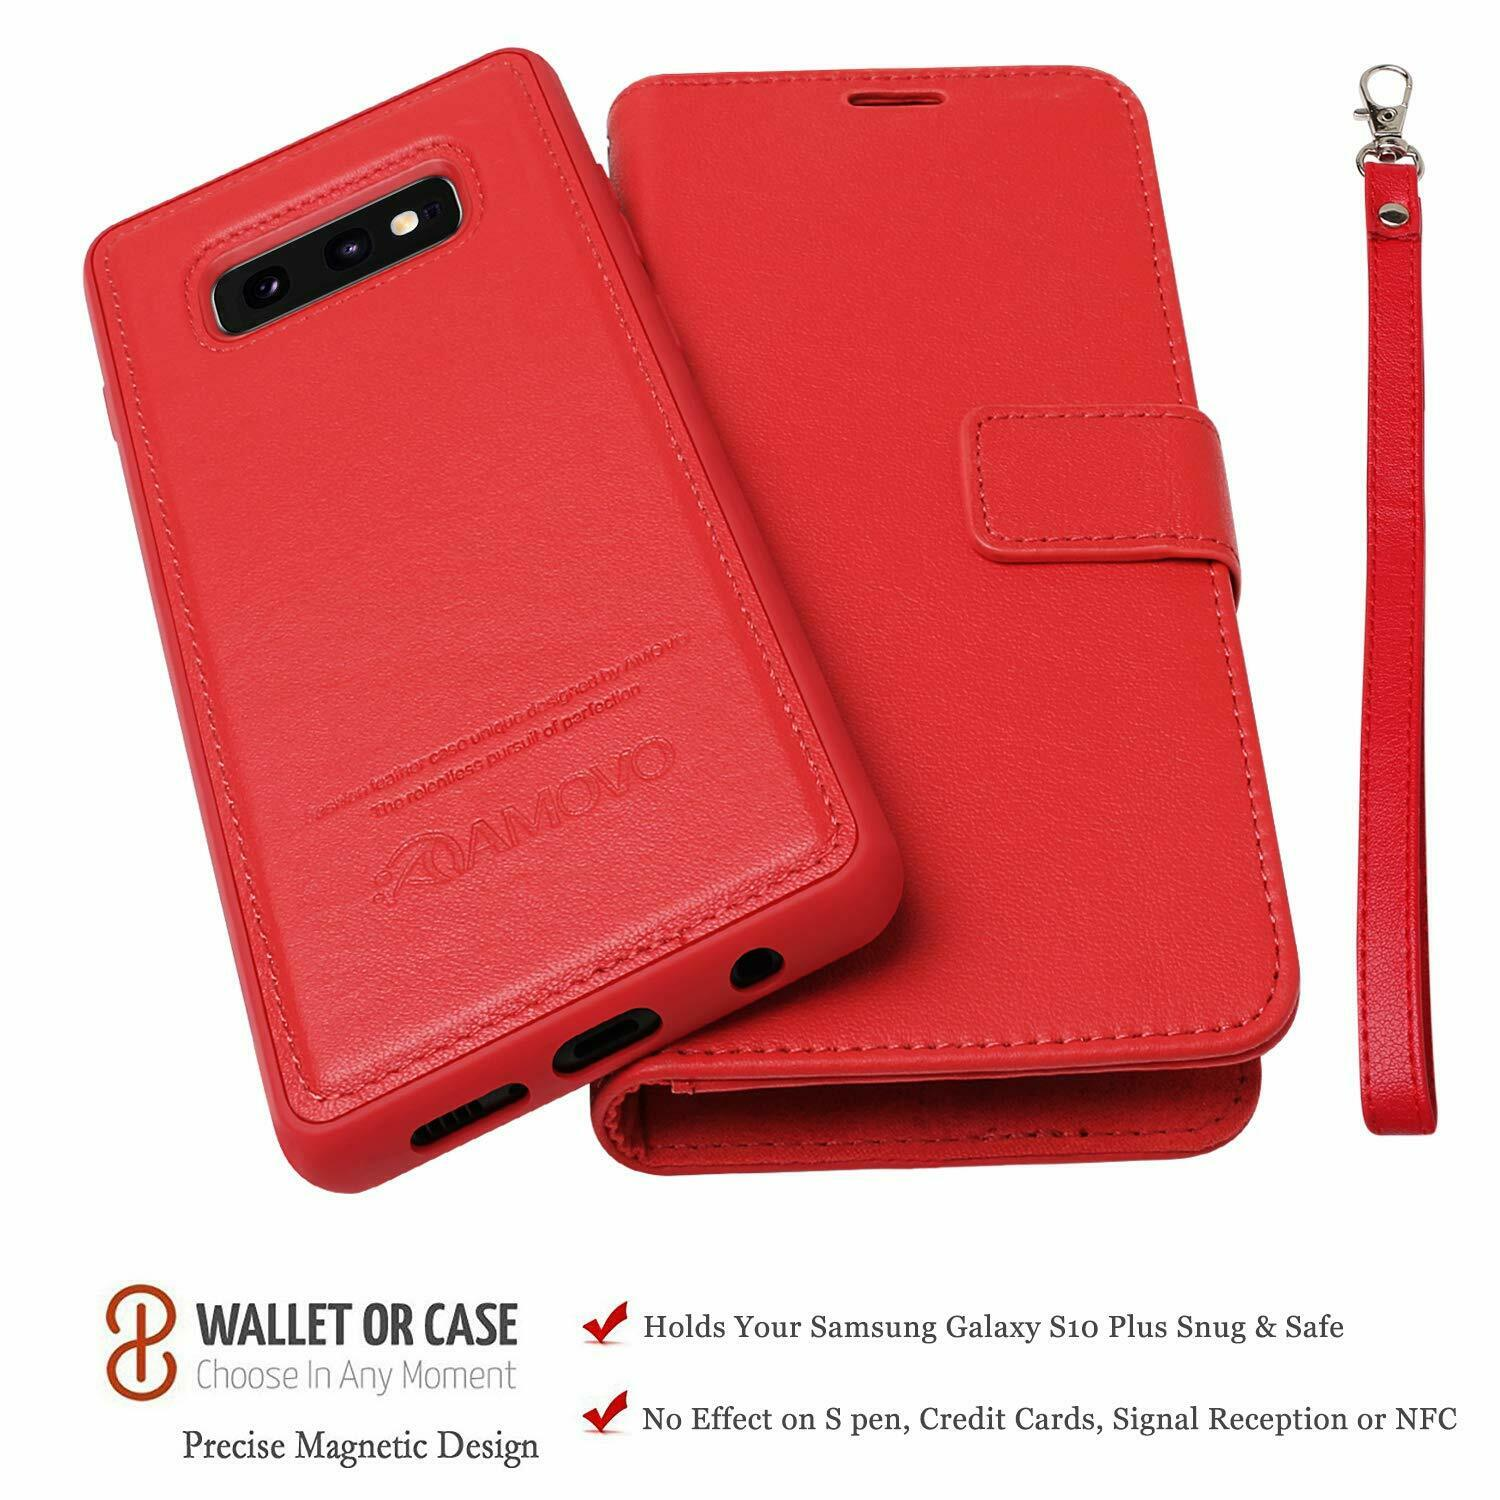 Leather Cover Compatible with Samsung Galaxy S10e Extra-Shockproof red Wallet Case for Samsung Galaxy S10e